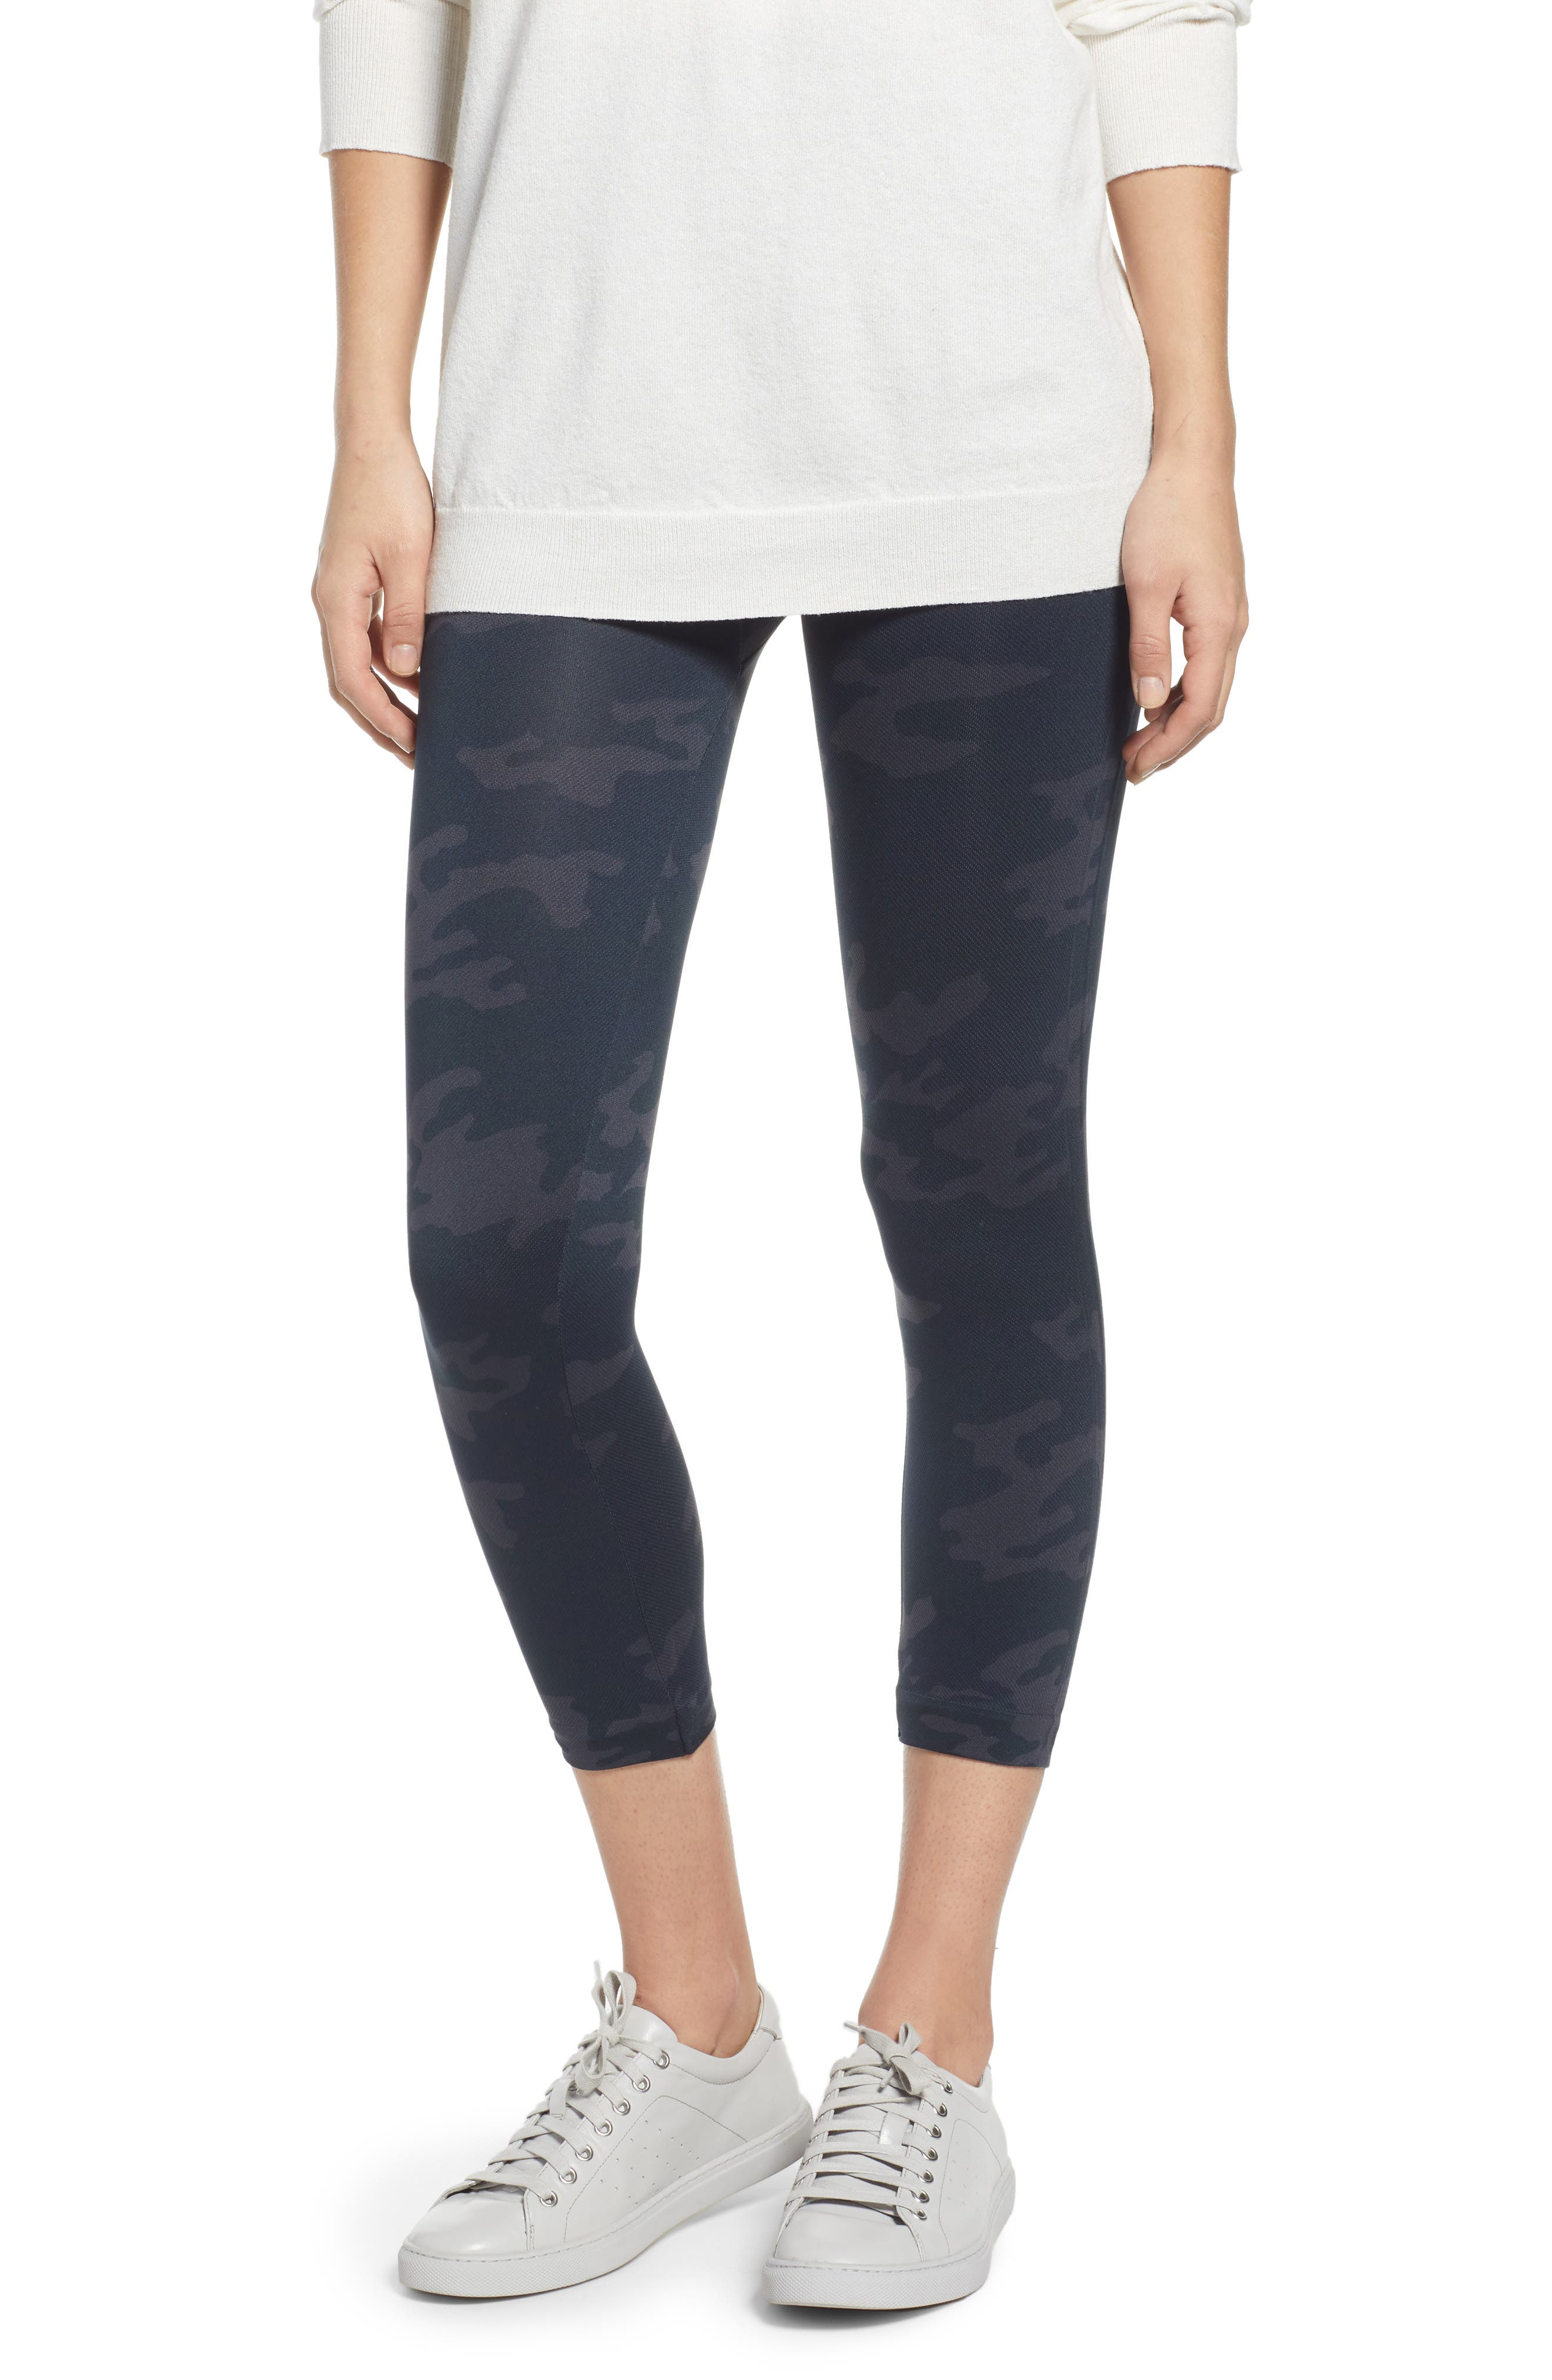 These everyday leggings are knit with firm, figure-shaping support. Style Name: Spanx Look At Me Now Crop Seamless Leggings. Style Number: 5292791. Available in stores.